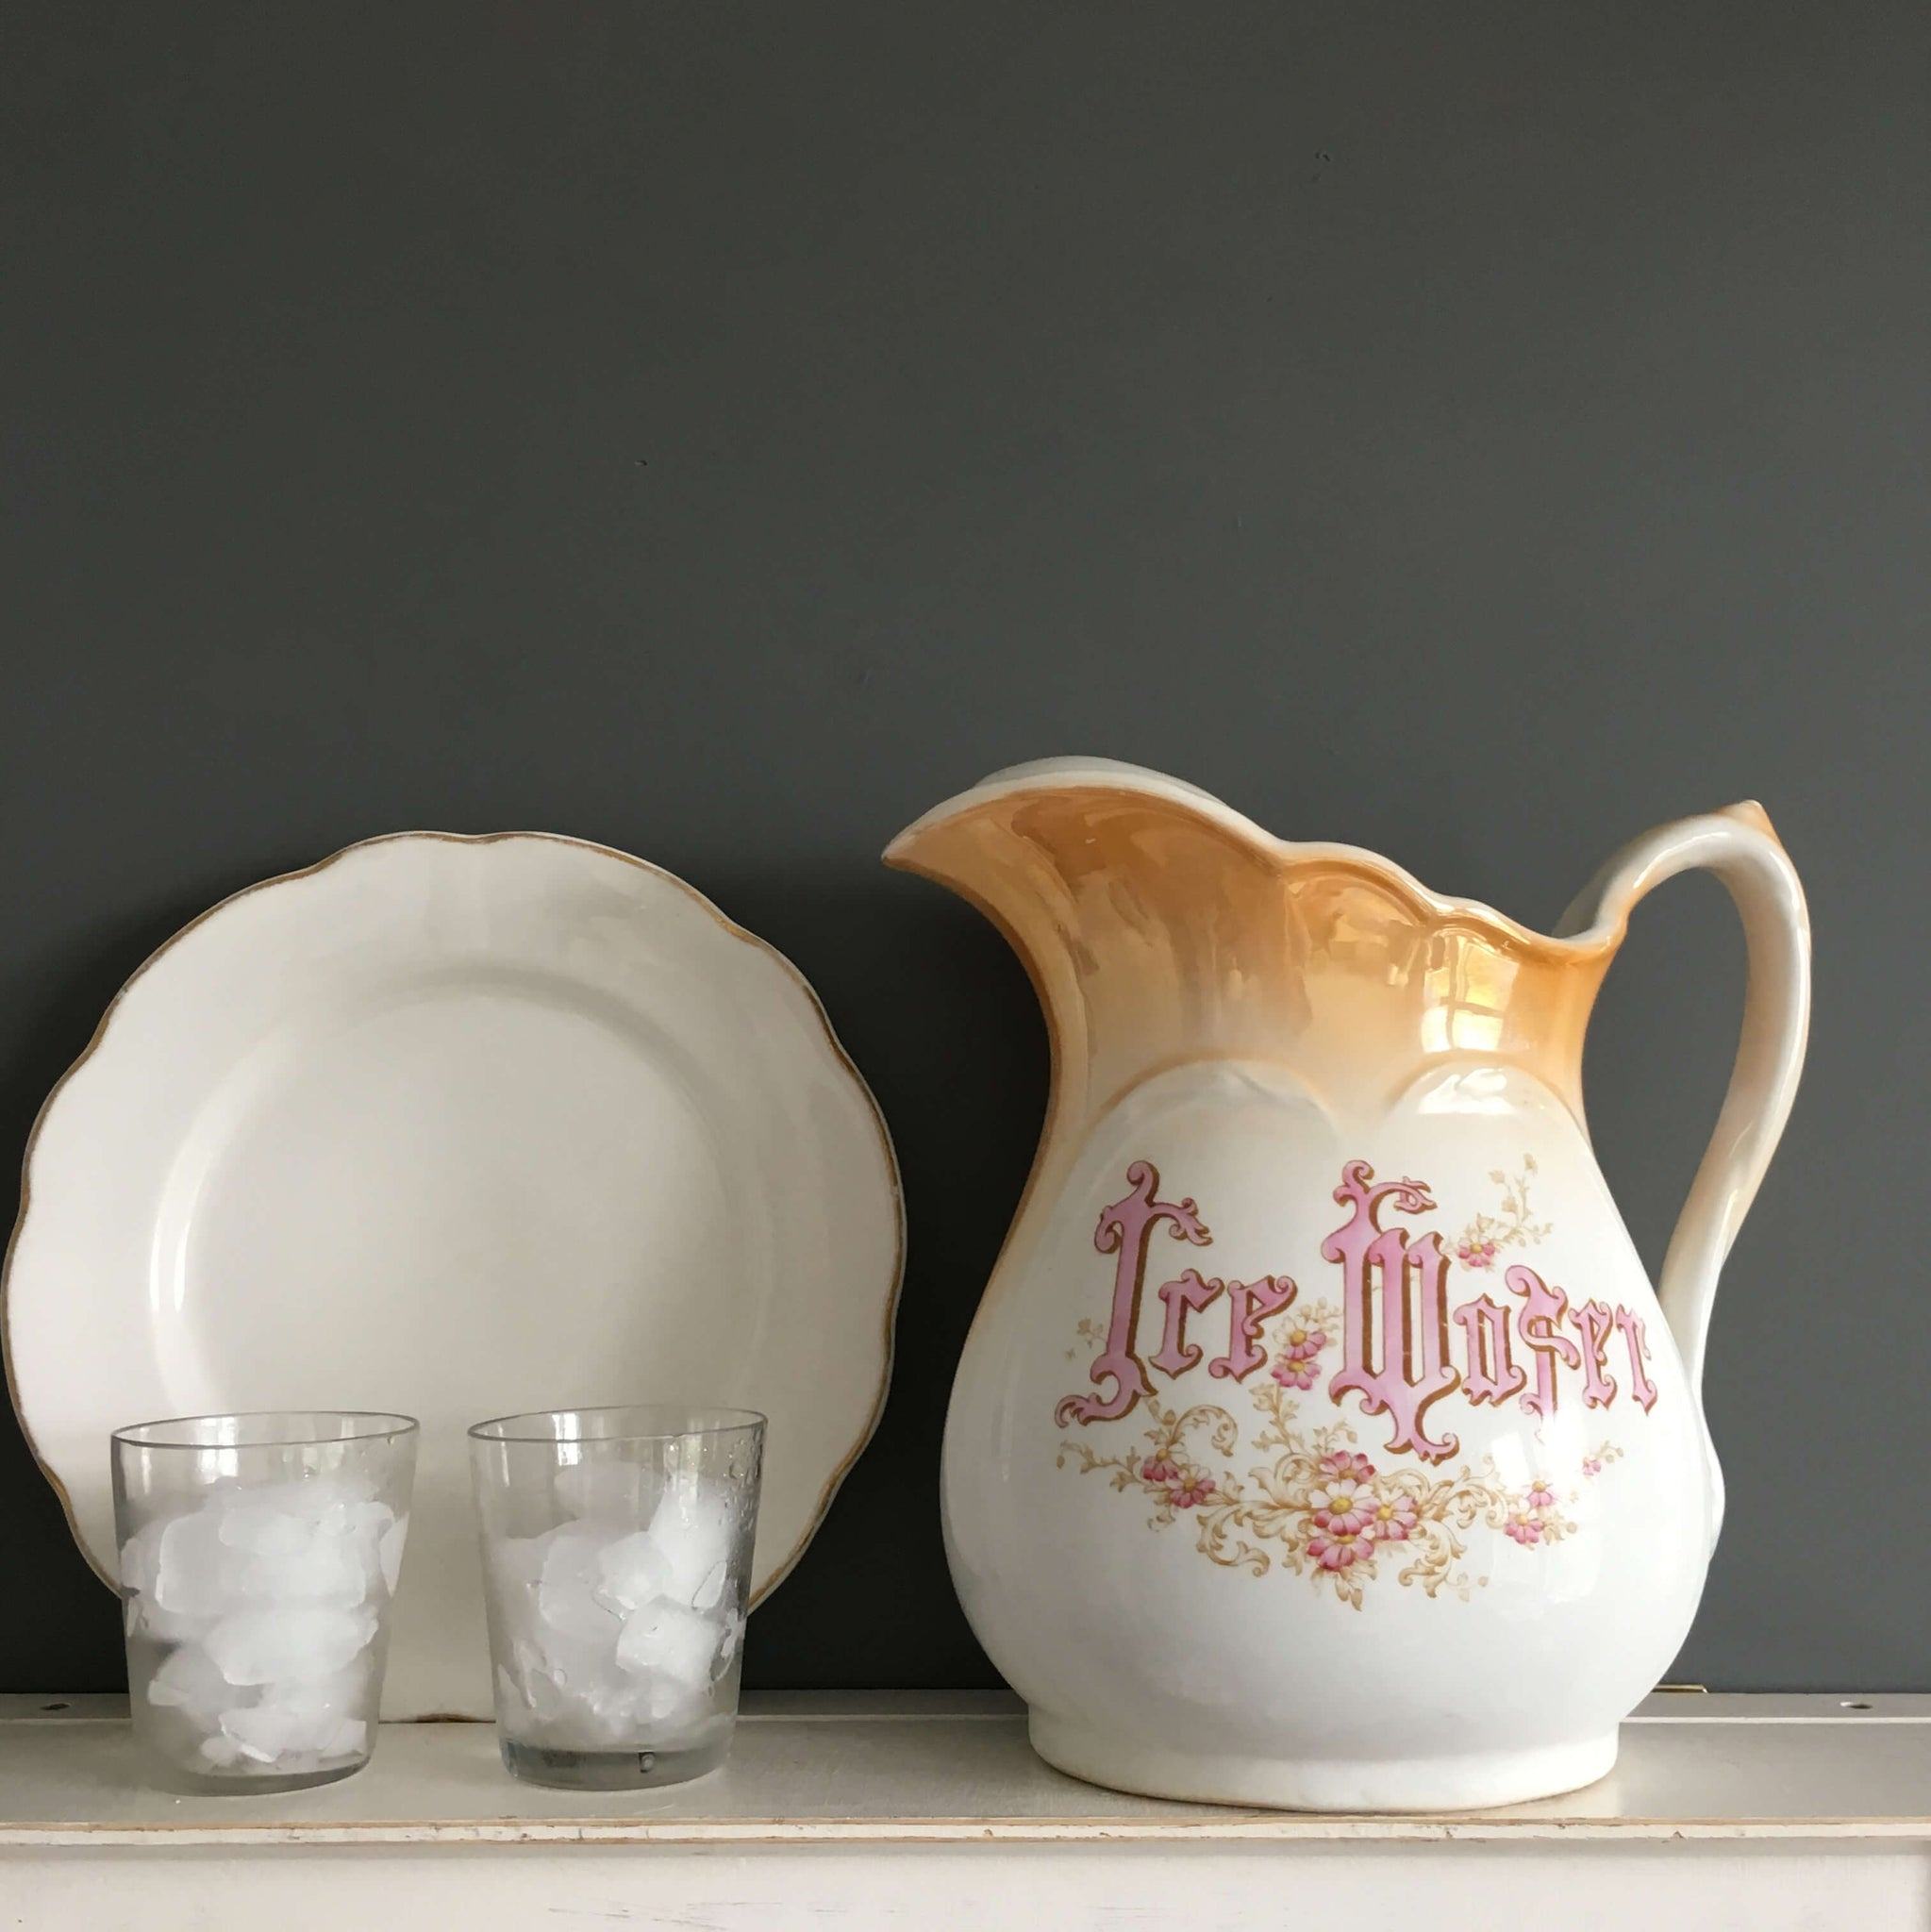 antique ice water pitcher victorian hotelware